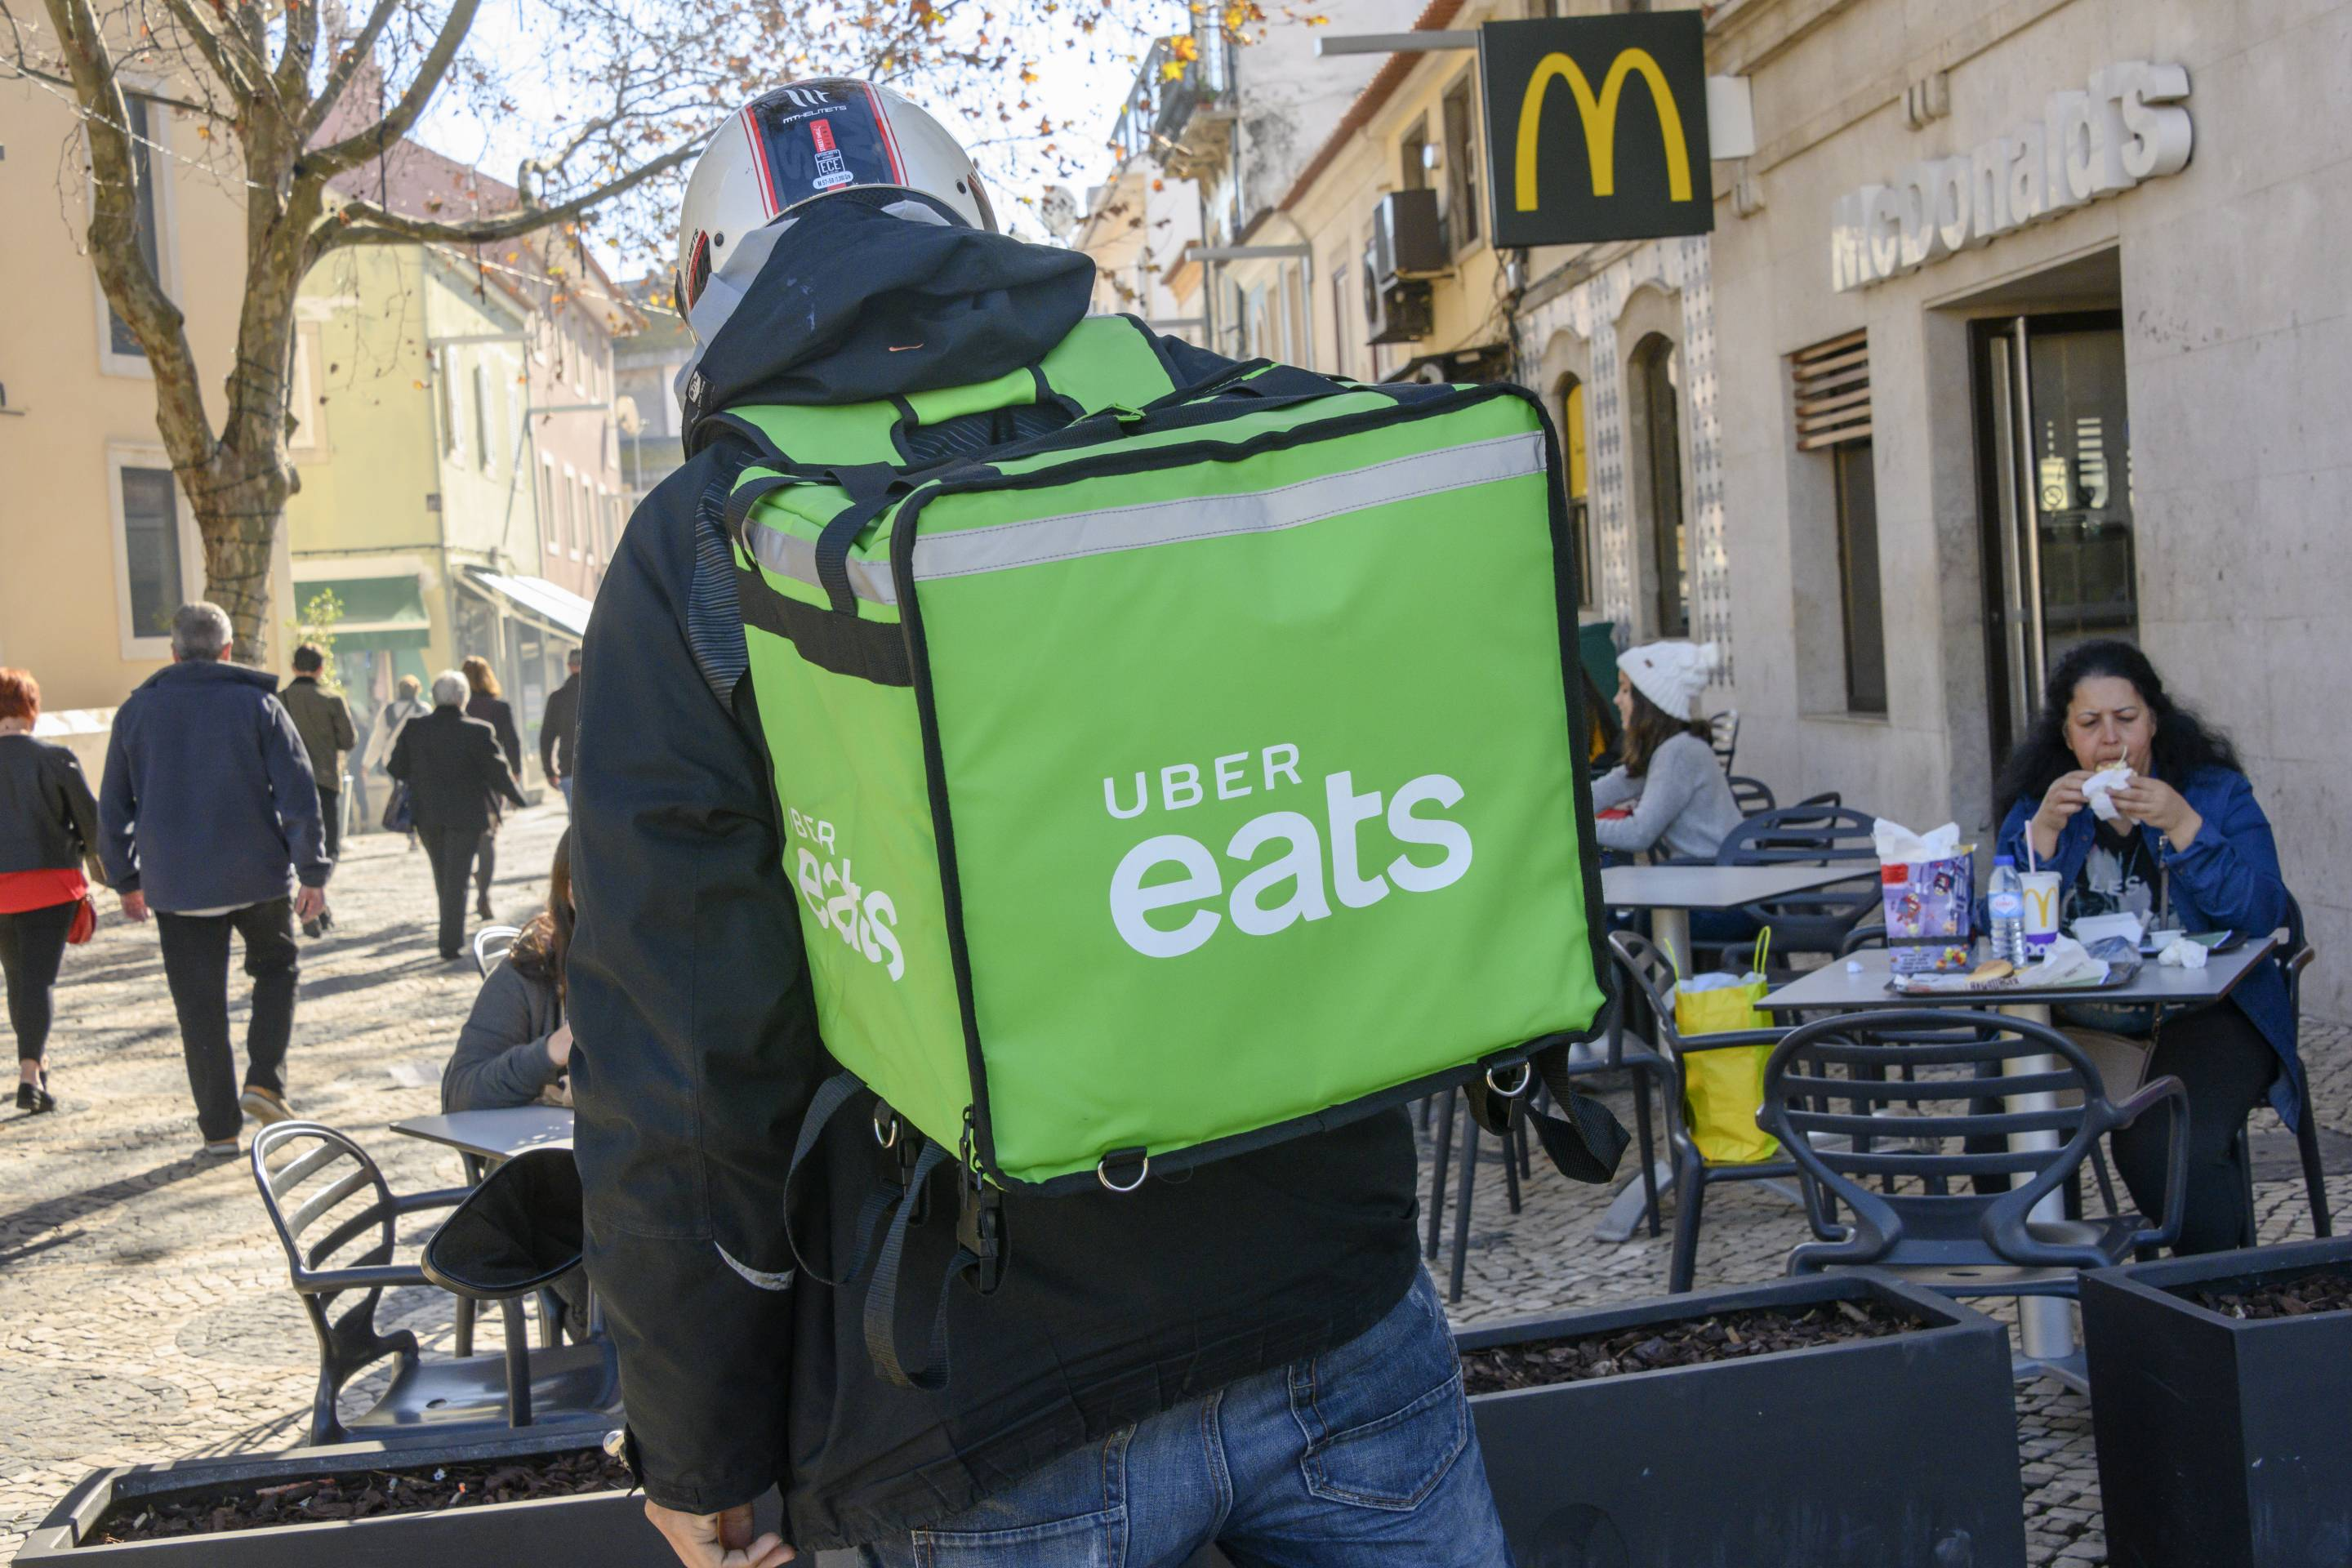 Uber Eats in Cascais, Portugal